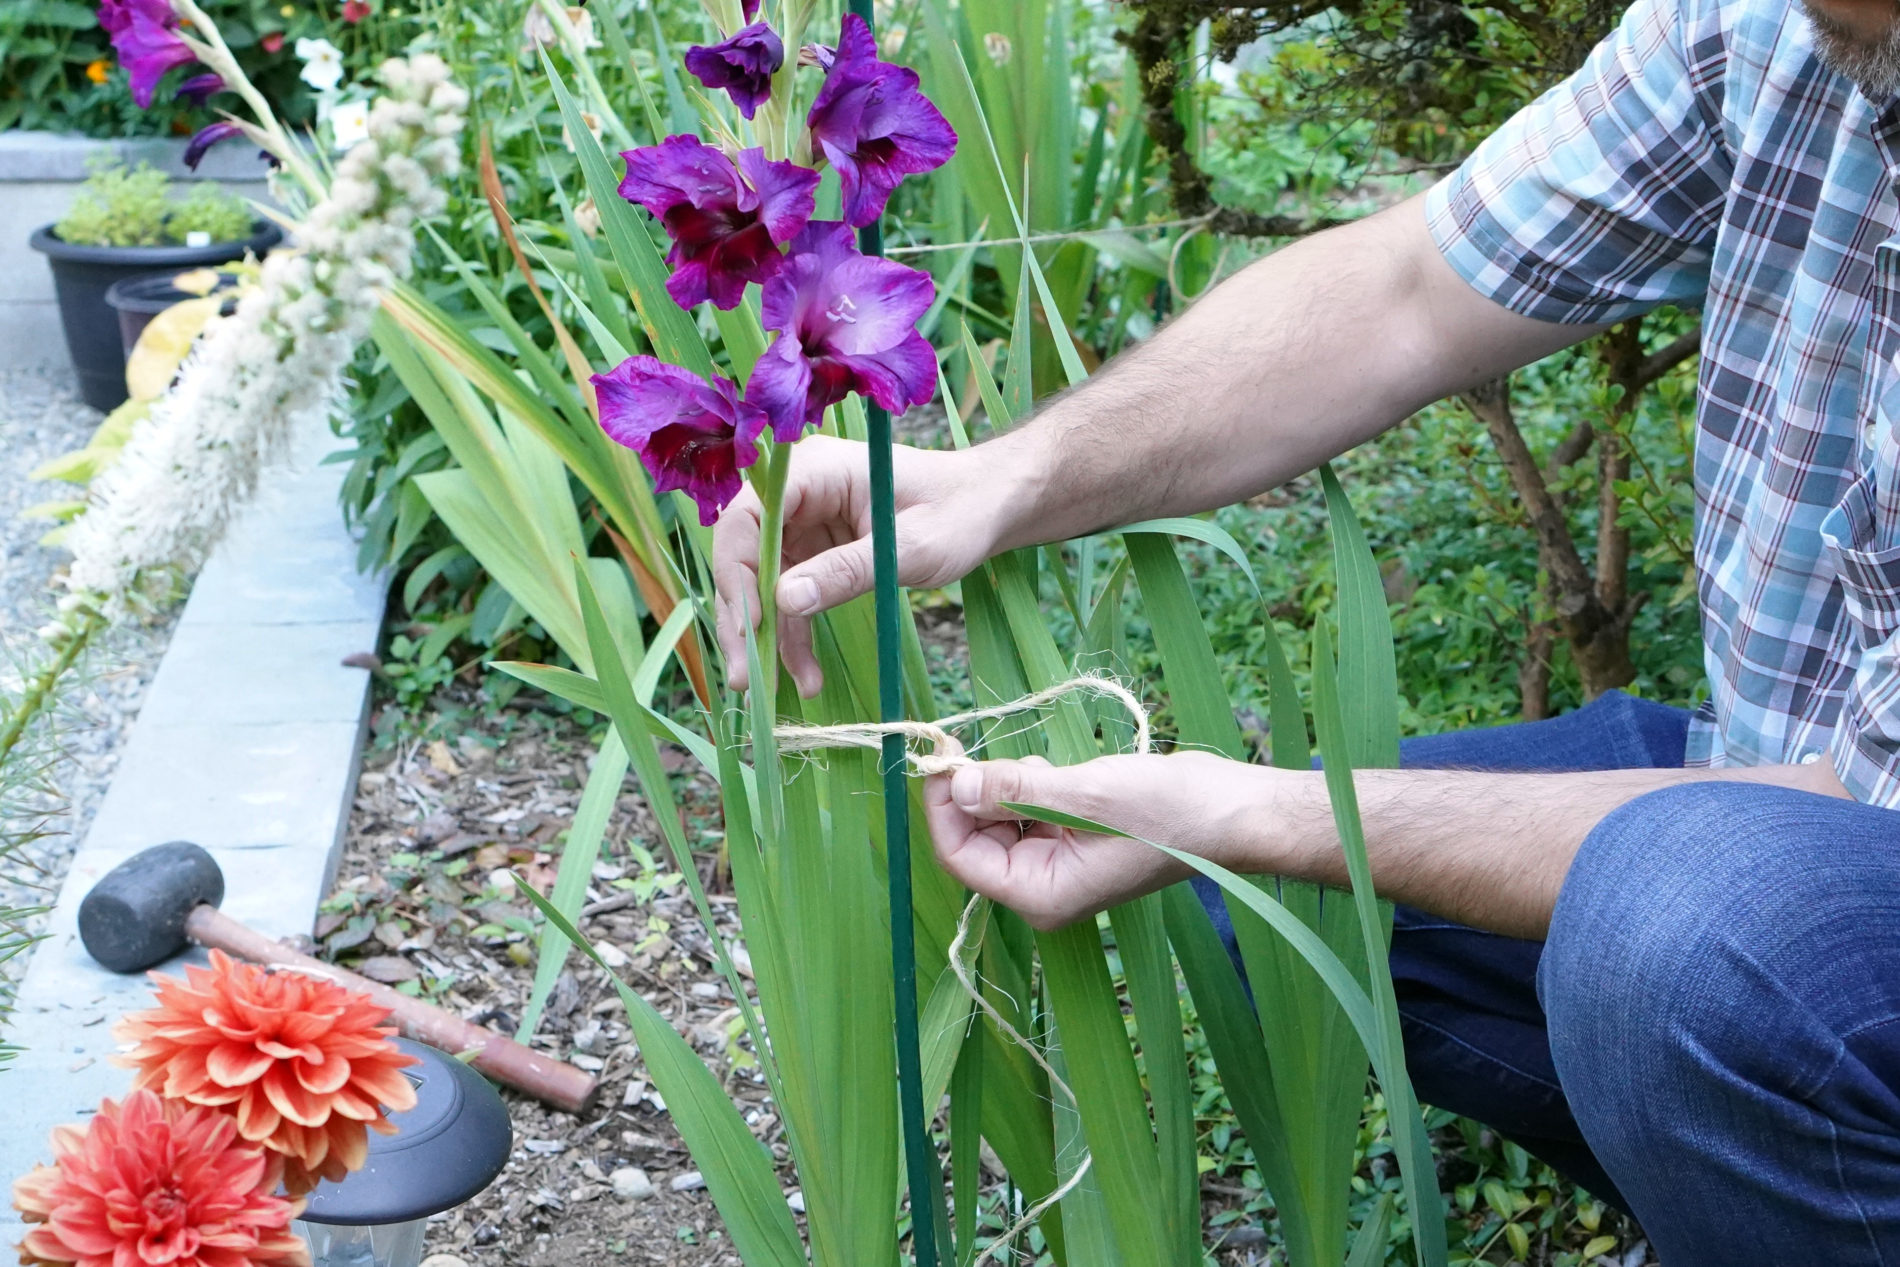 Tying a purple gladiolus plant stem to a plant stake